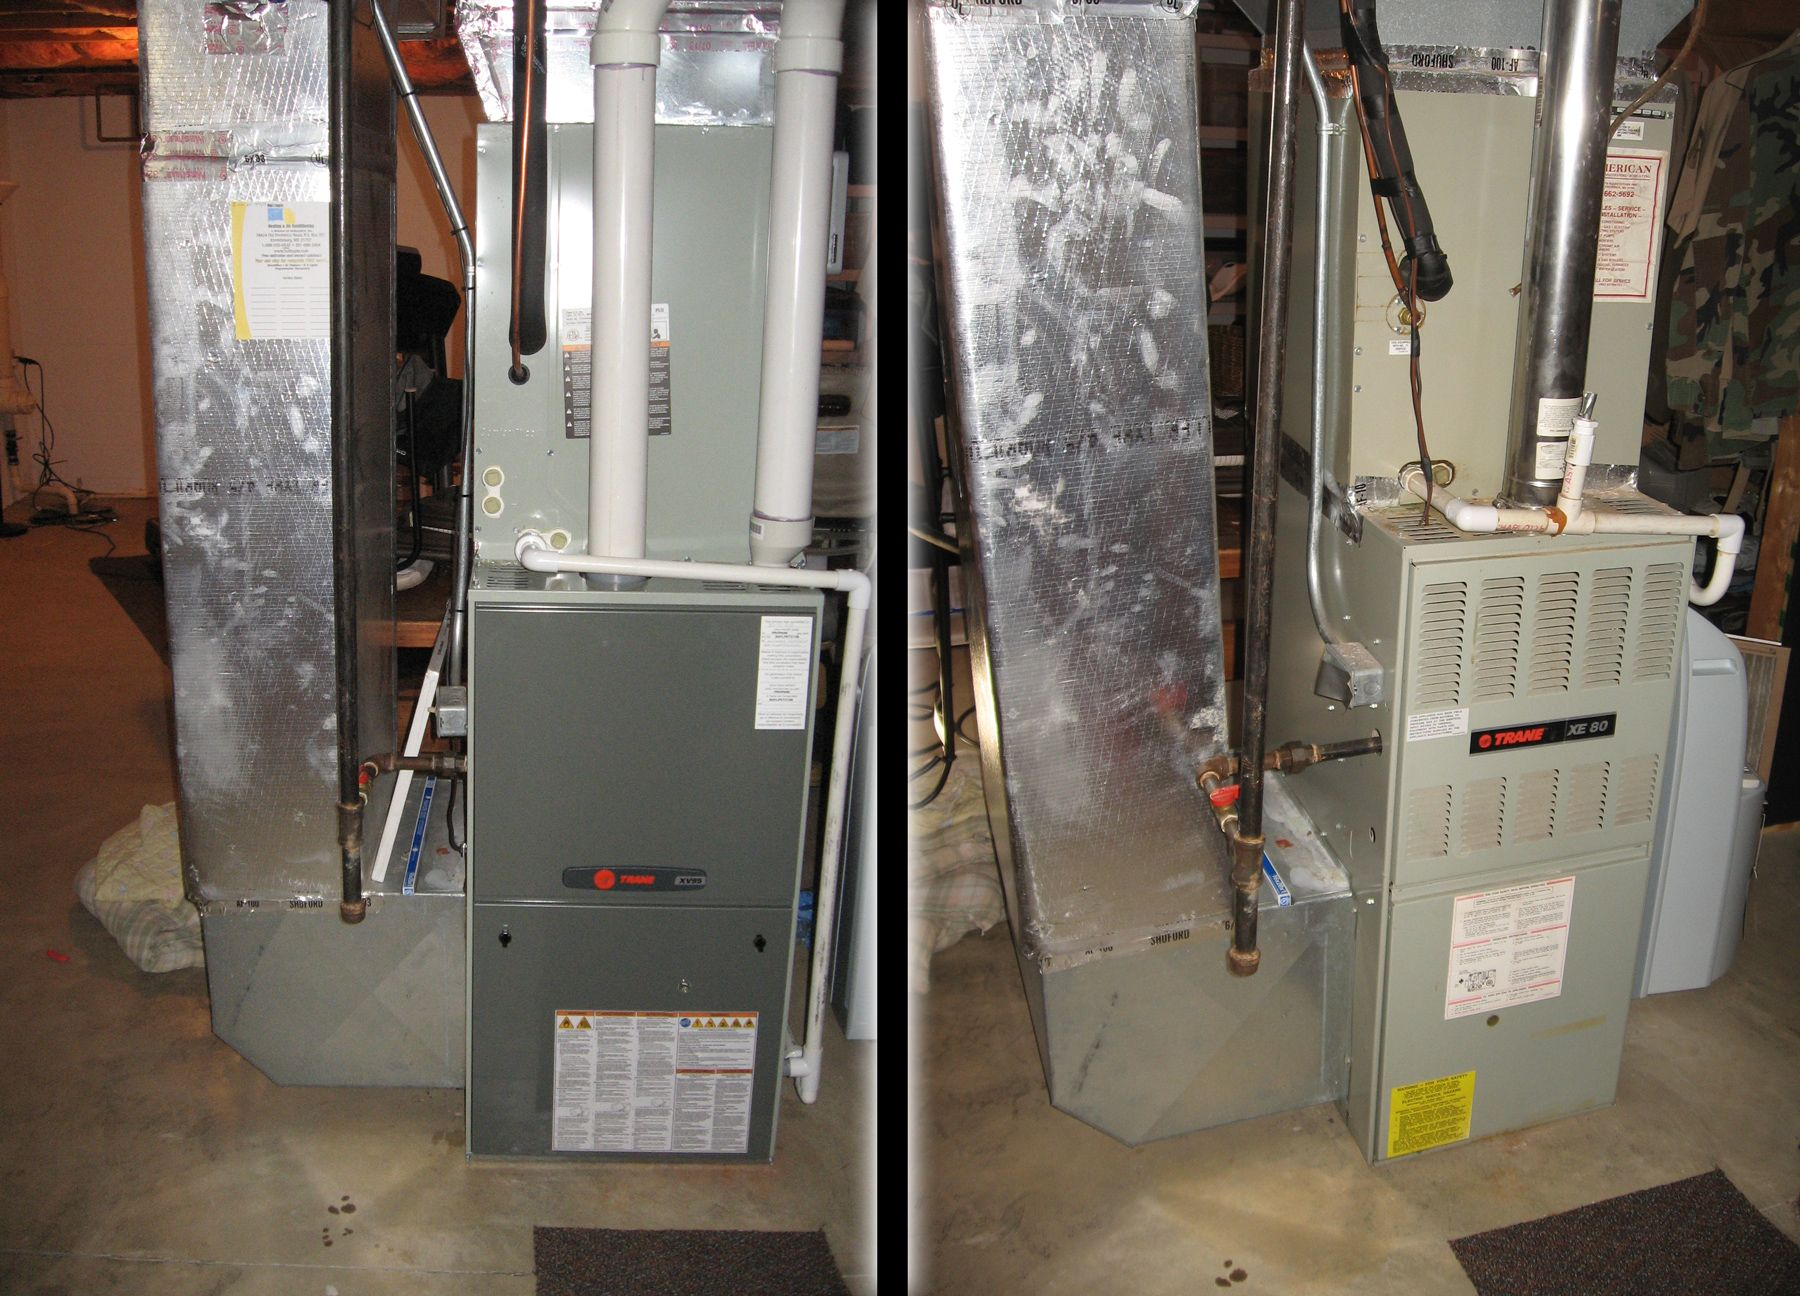 medium resolution of here s a trane xv95 furnace and an xl18i ac unit we installed for a customer holtzopleheatingandairconditioning beforeandafter